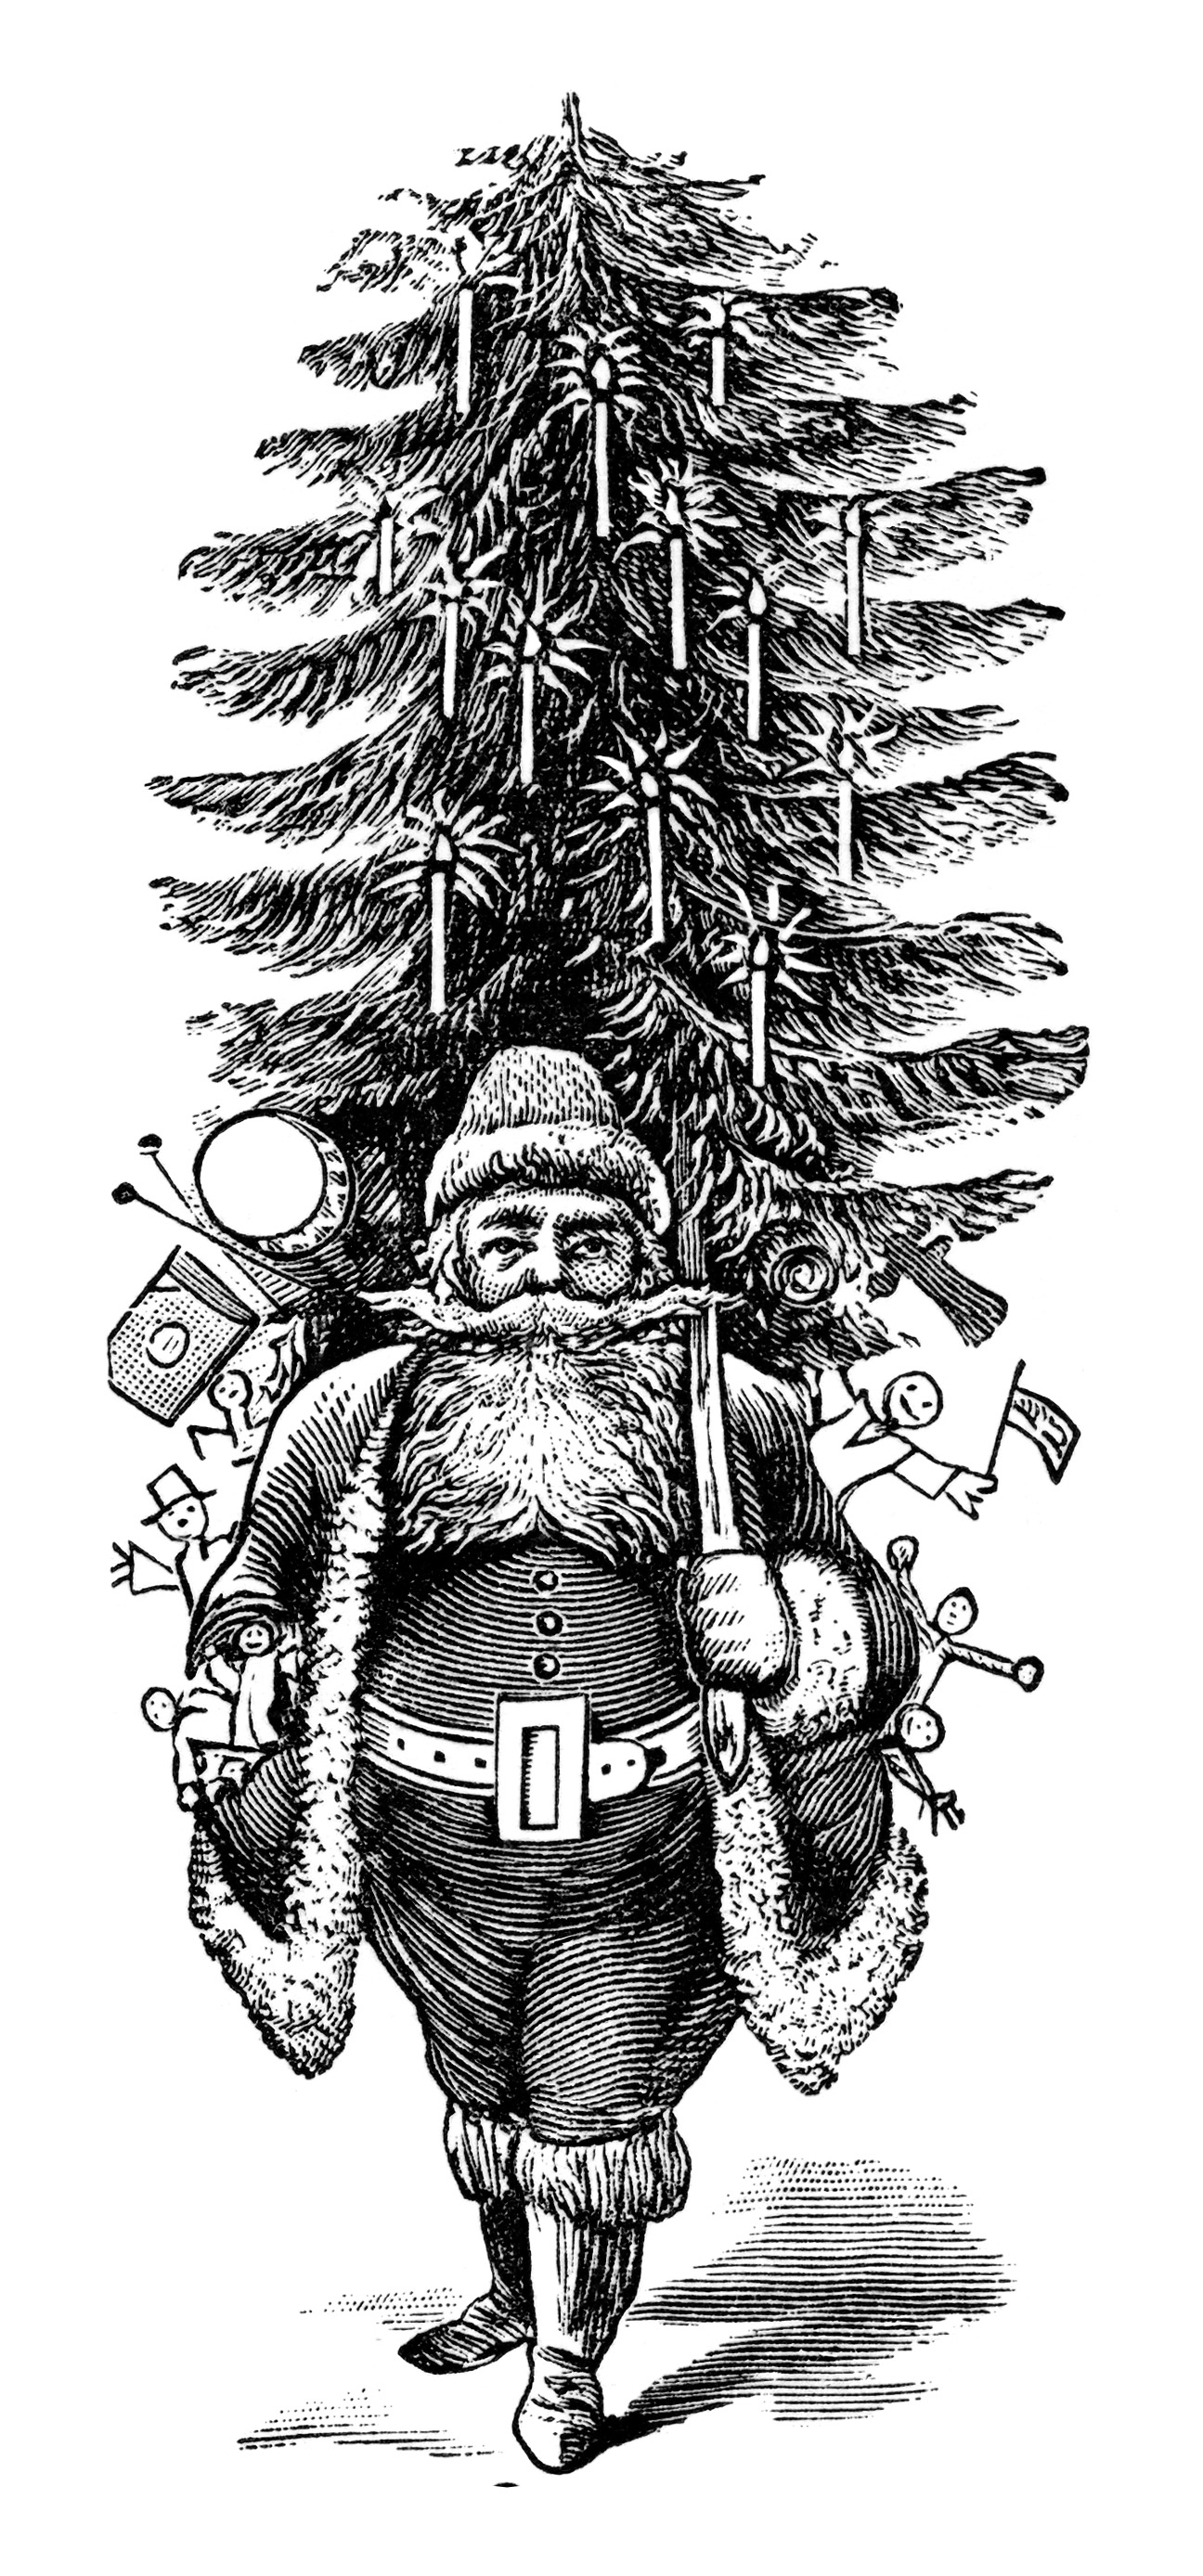 vintage santa clipart, vintage printable christmas, free black and white clip art. fun santa image, unique old fashioned holiday illustration